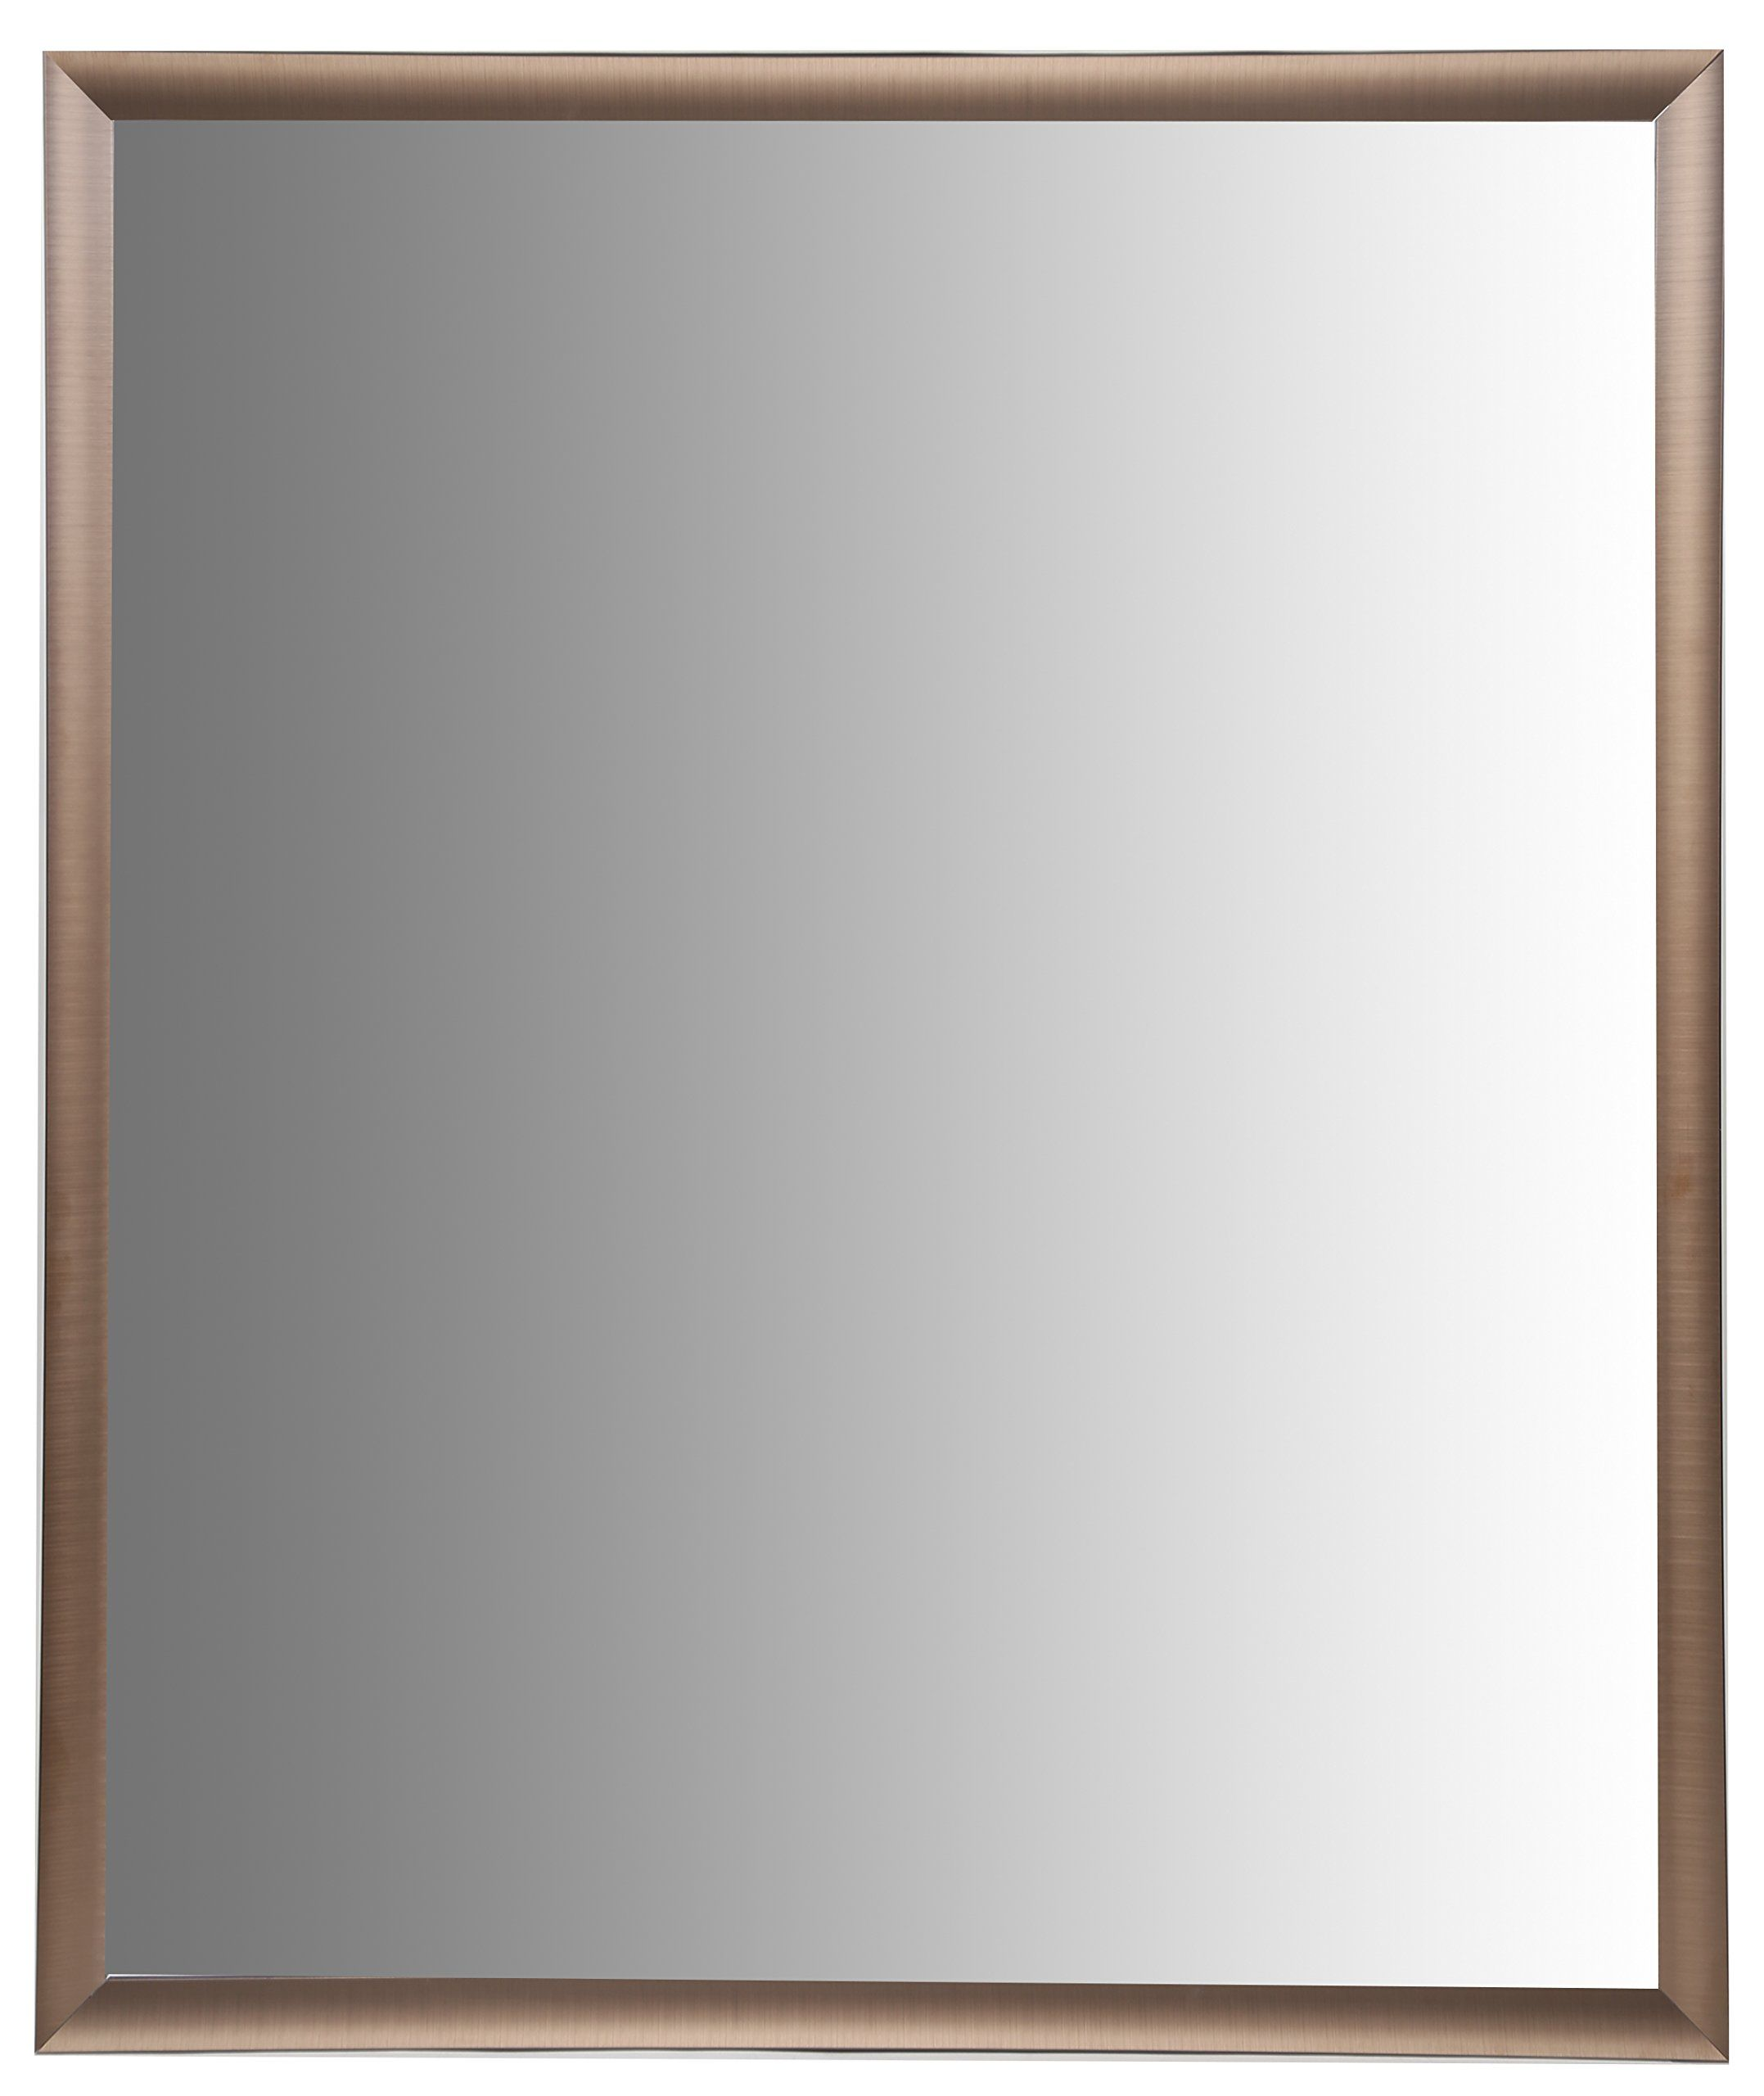 Nielsen Bainbridge 24x30 Rectangular Aluminum Wall Mirror